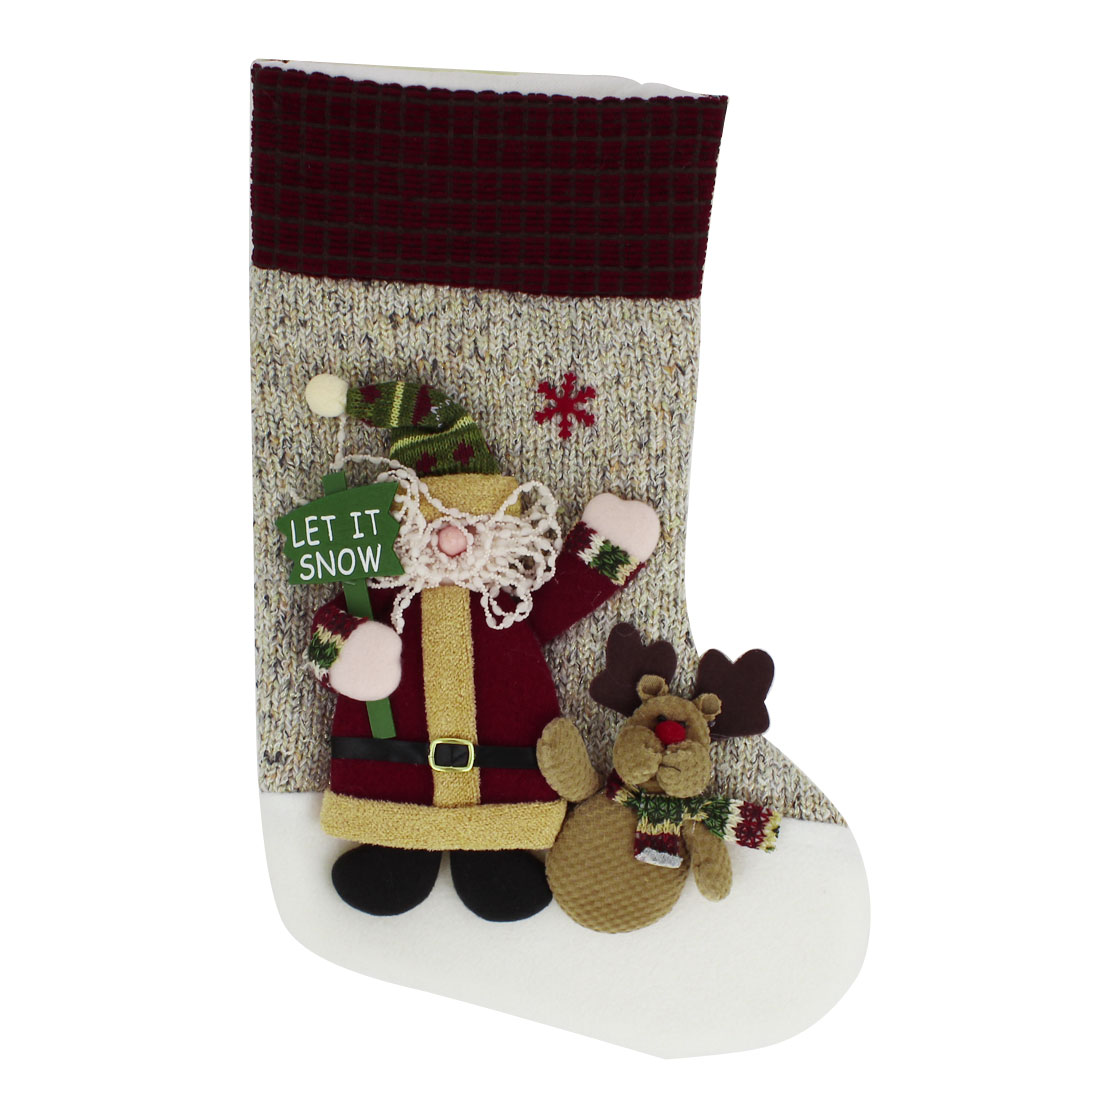 27cm x 43cm Xmas Santa Claus Detail Felt Christmas Stocking Gift Holder Assorted Color